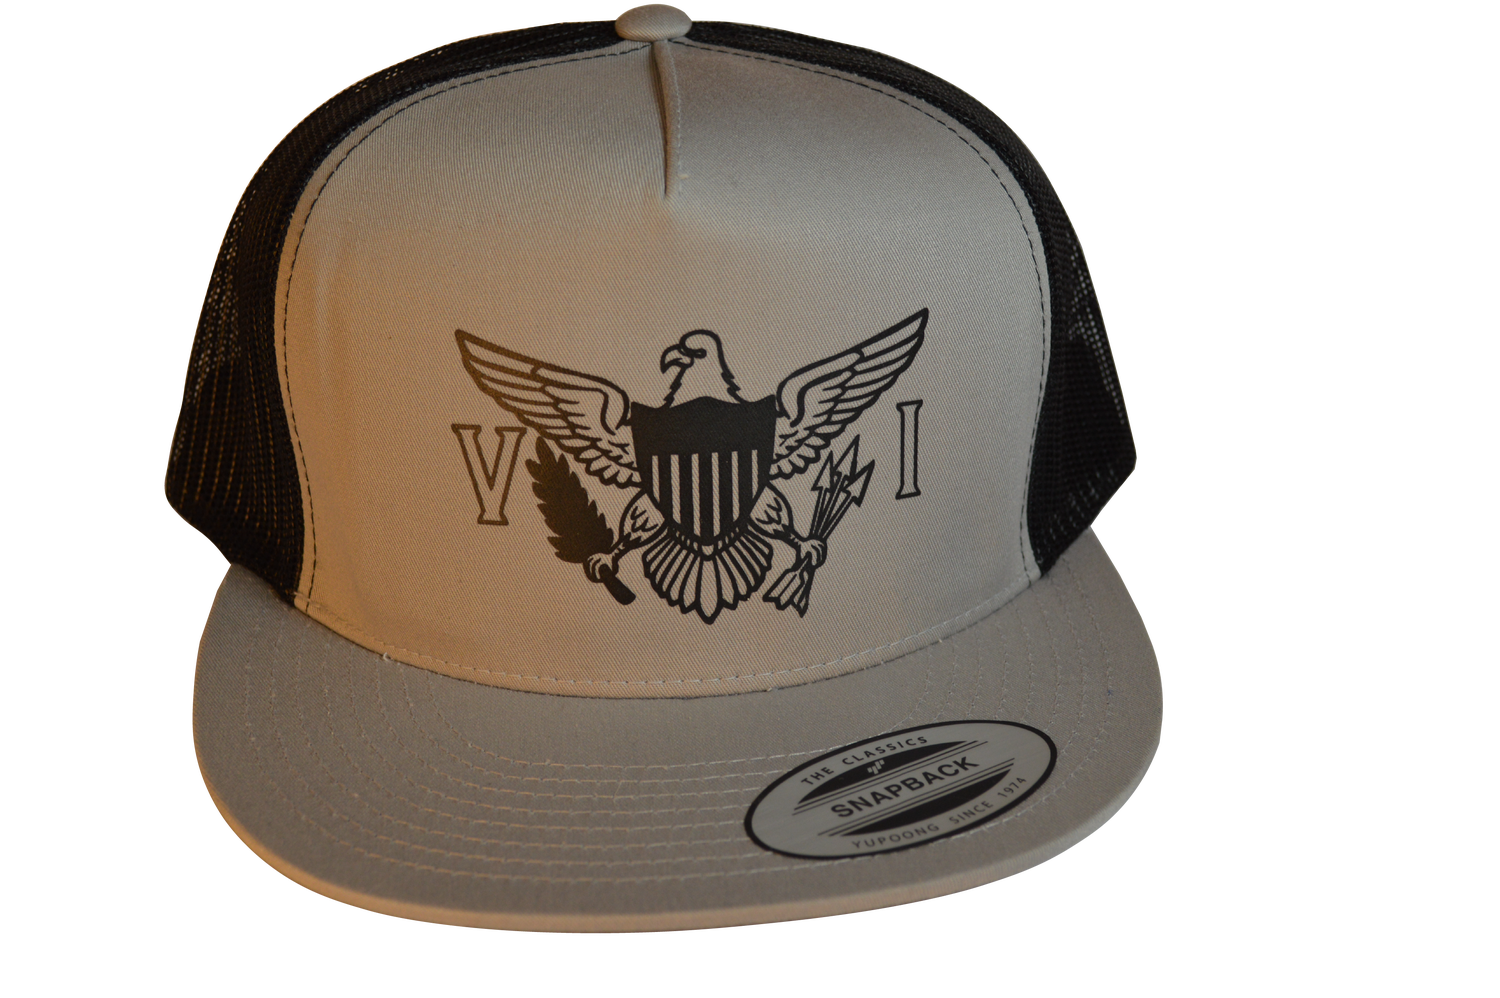 Image of Yooupong Trucker Hat - VI flag